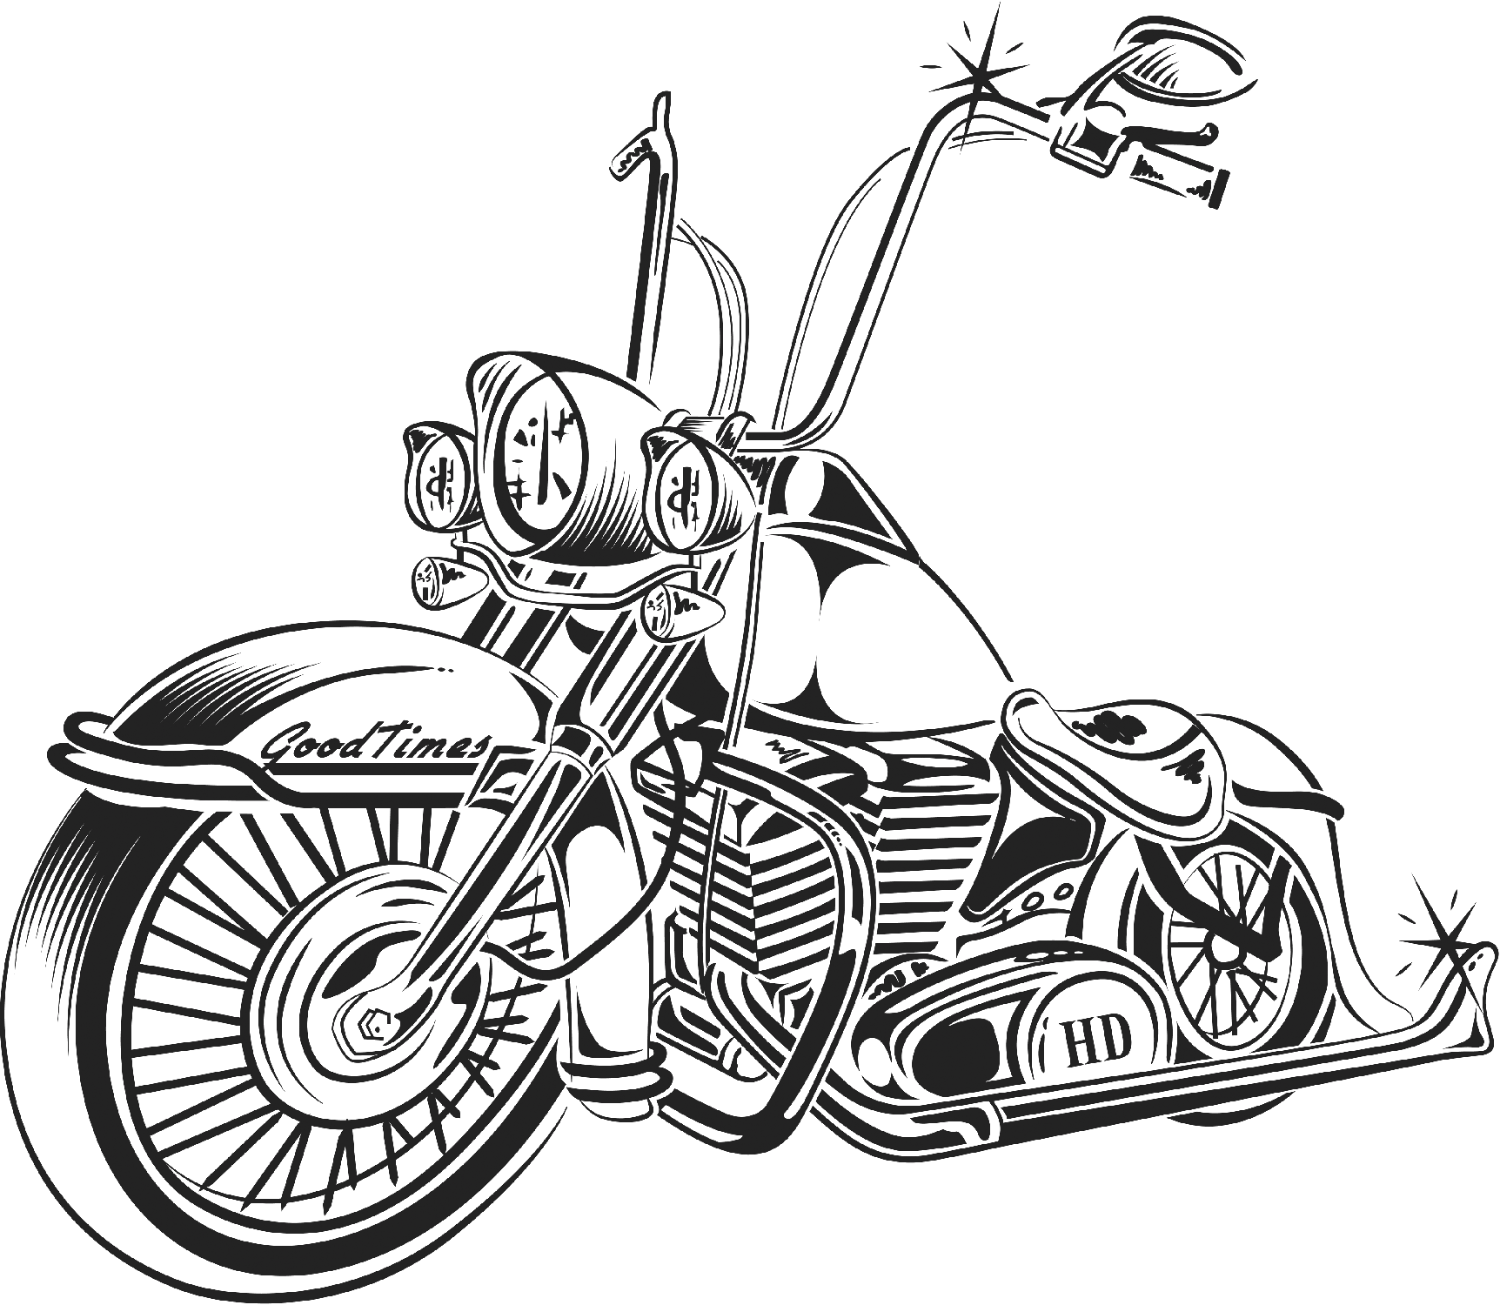 Flames clipart motorcycle. Chopper drawing at getdrawings